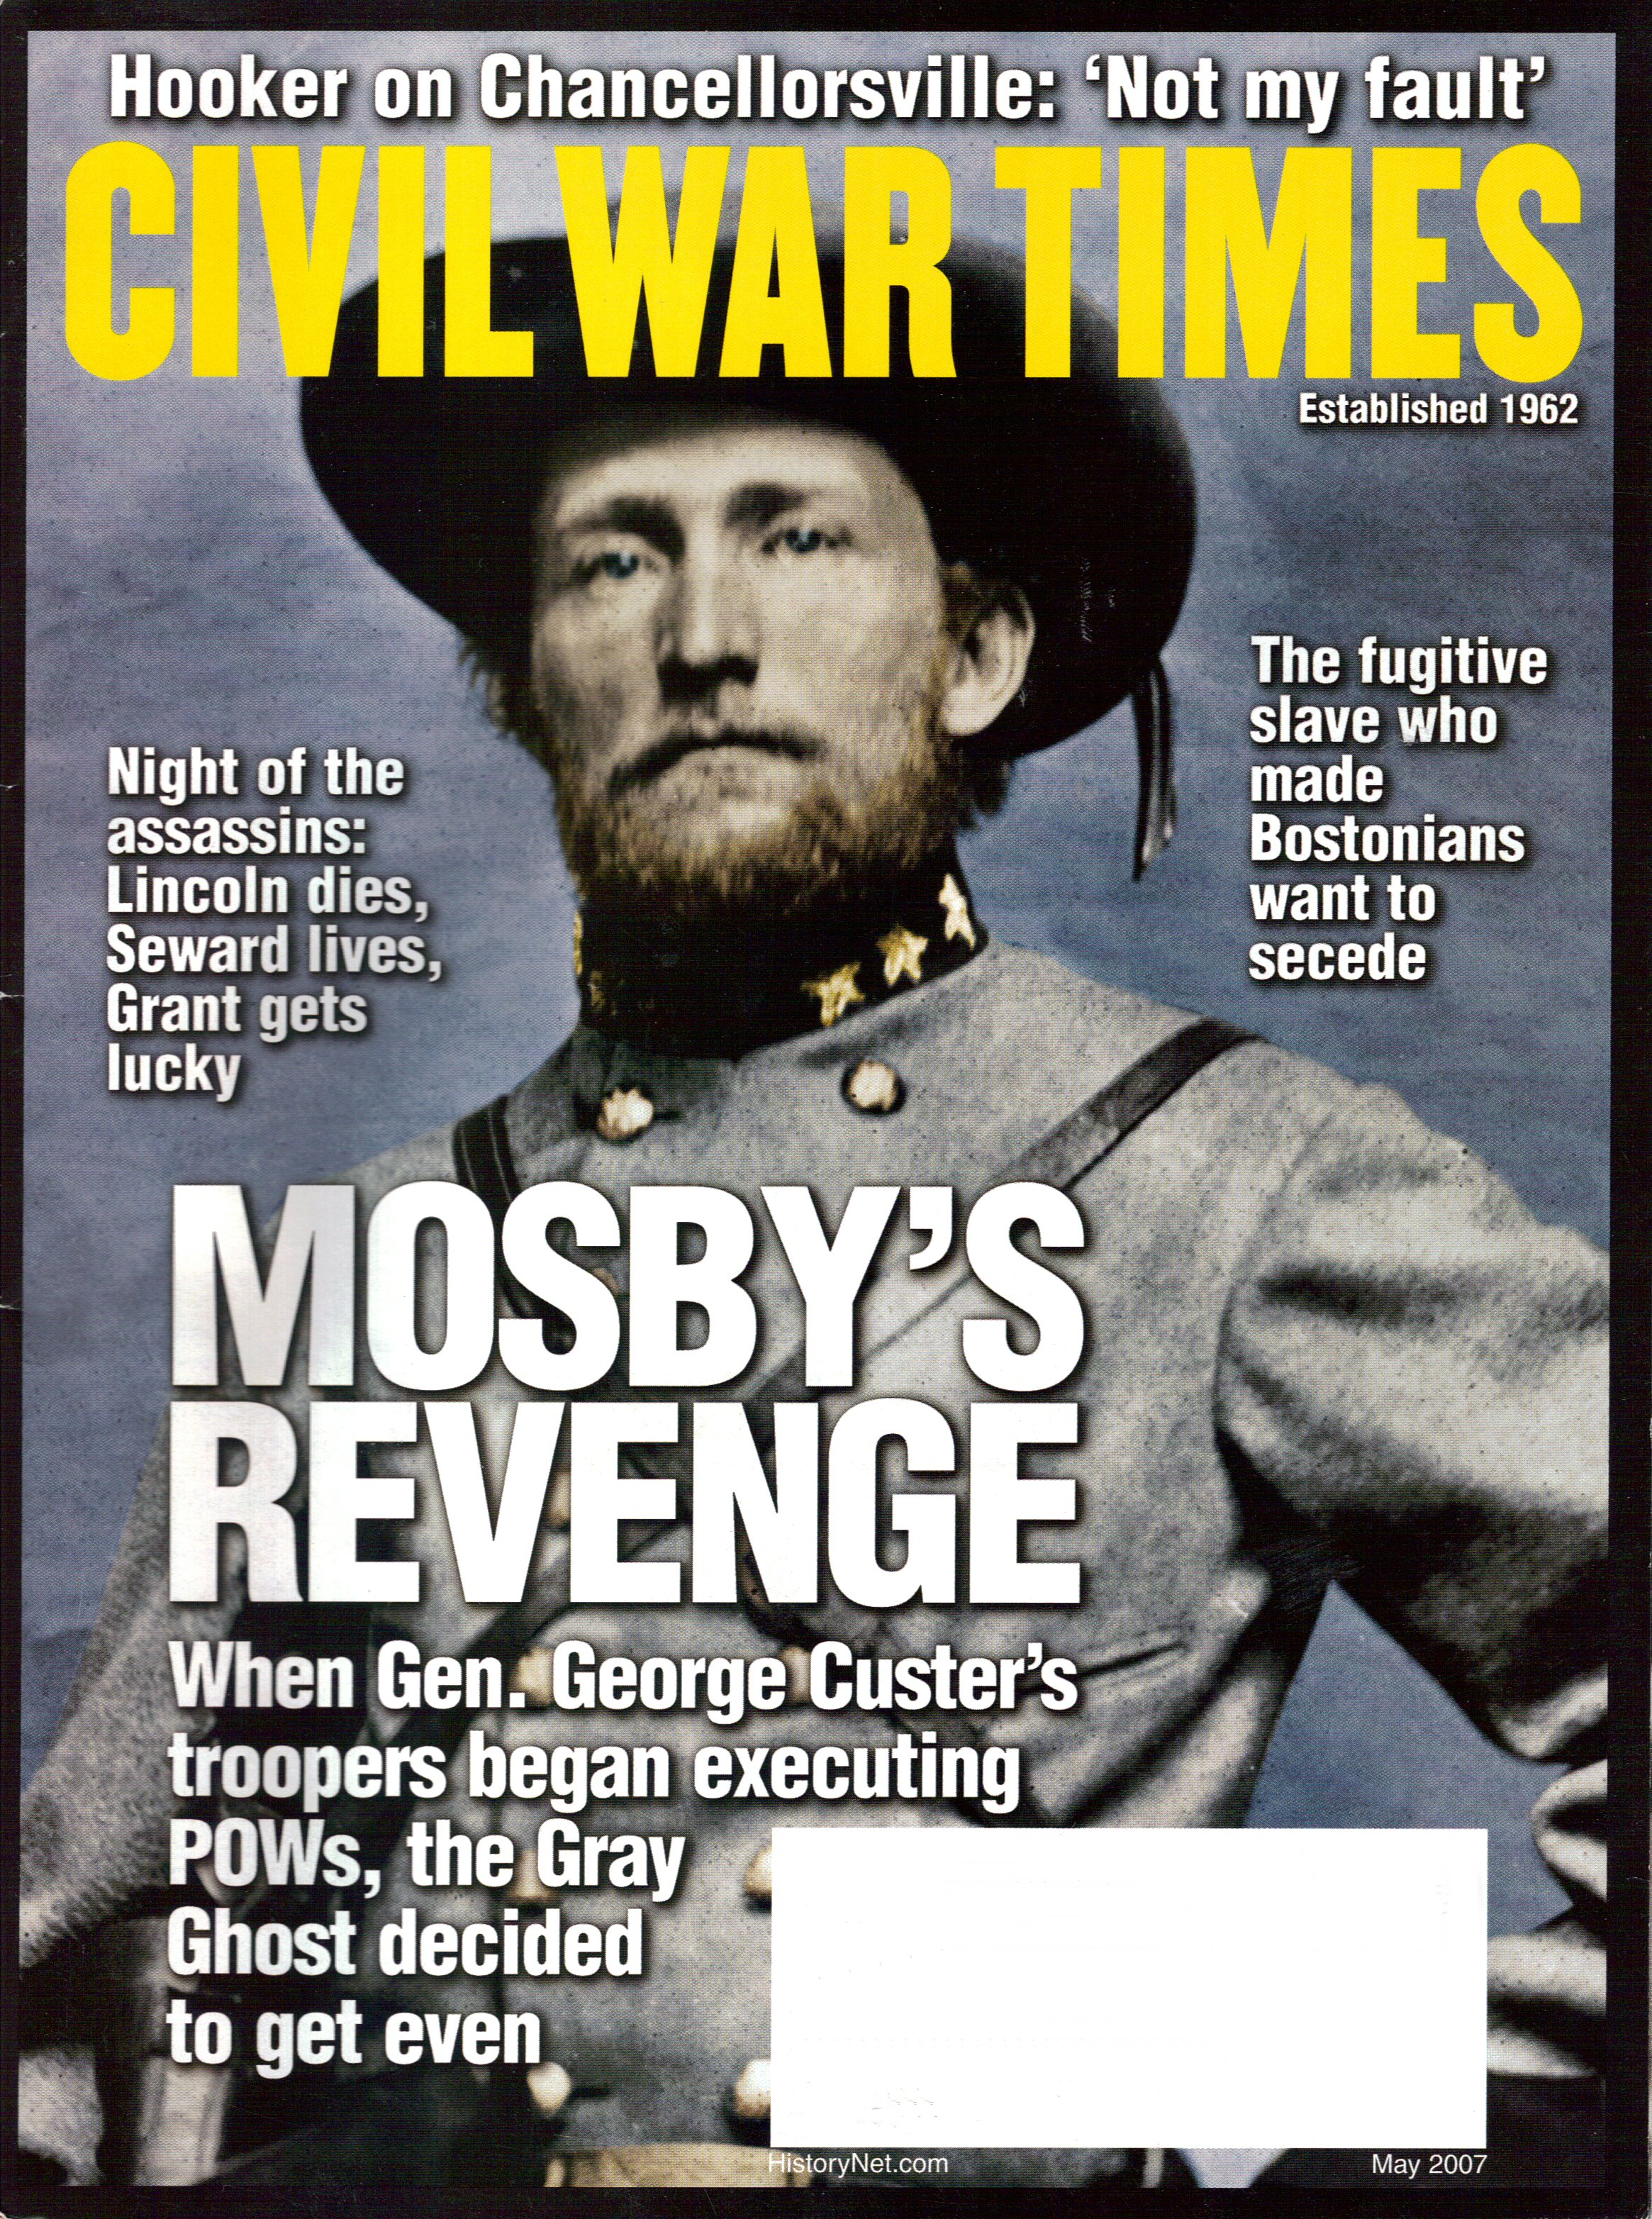 Civil War Times, Volume 46, Number 3 (May 2007)